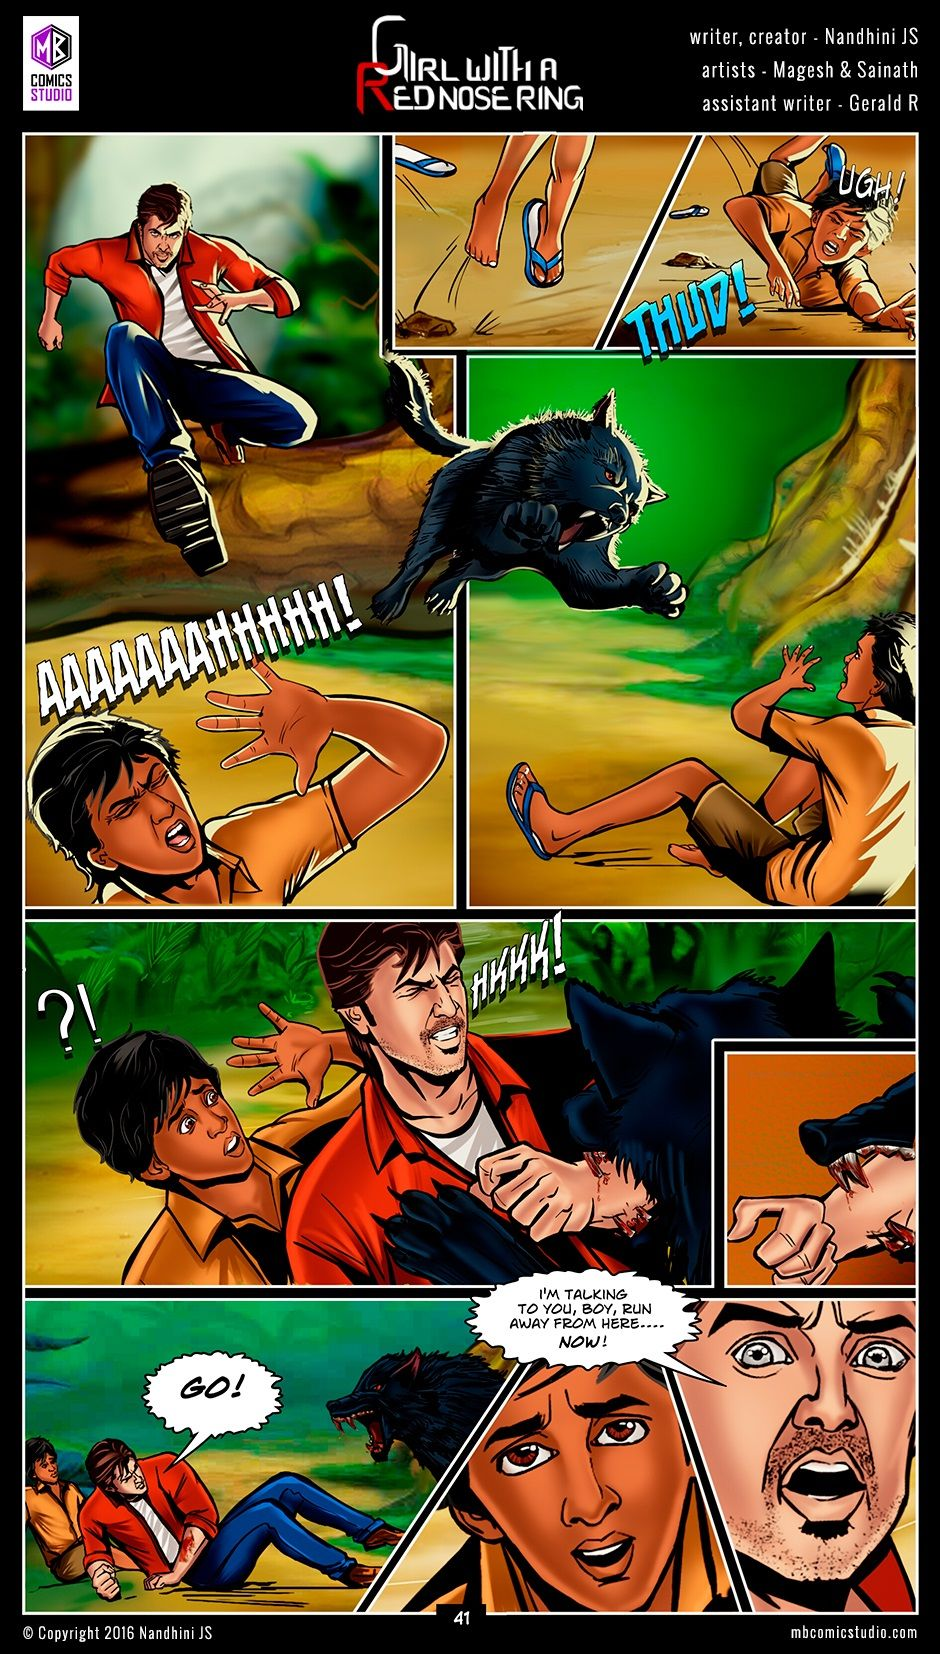 Page 41 - Nandhini's 'Girl with a Red Nose Ring' Comics  (read free